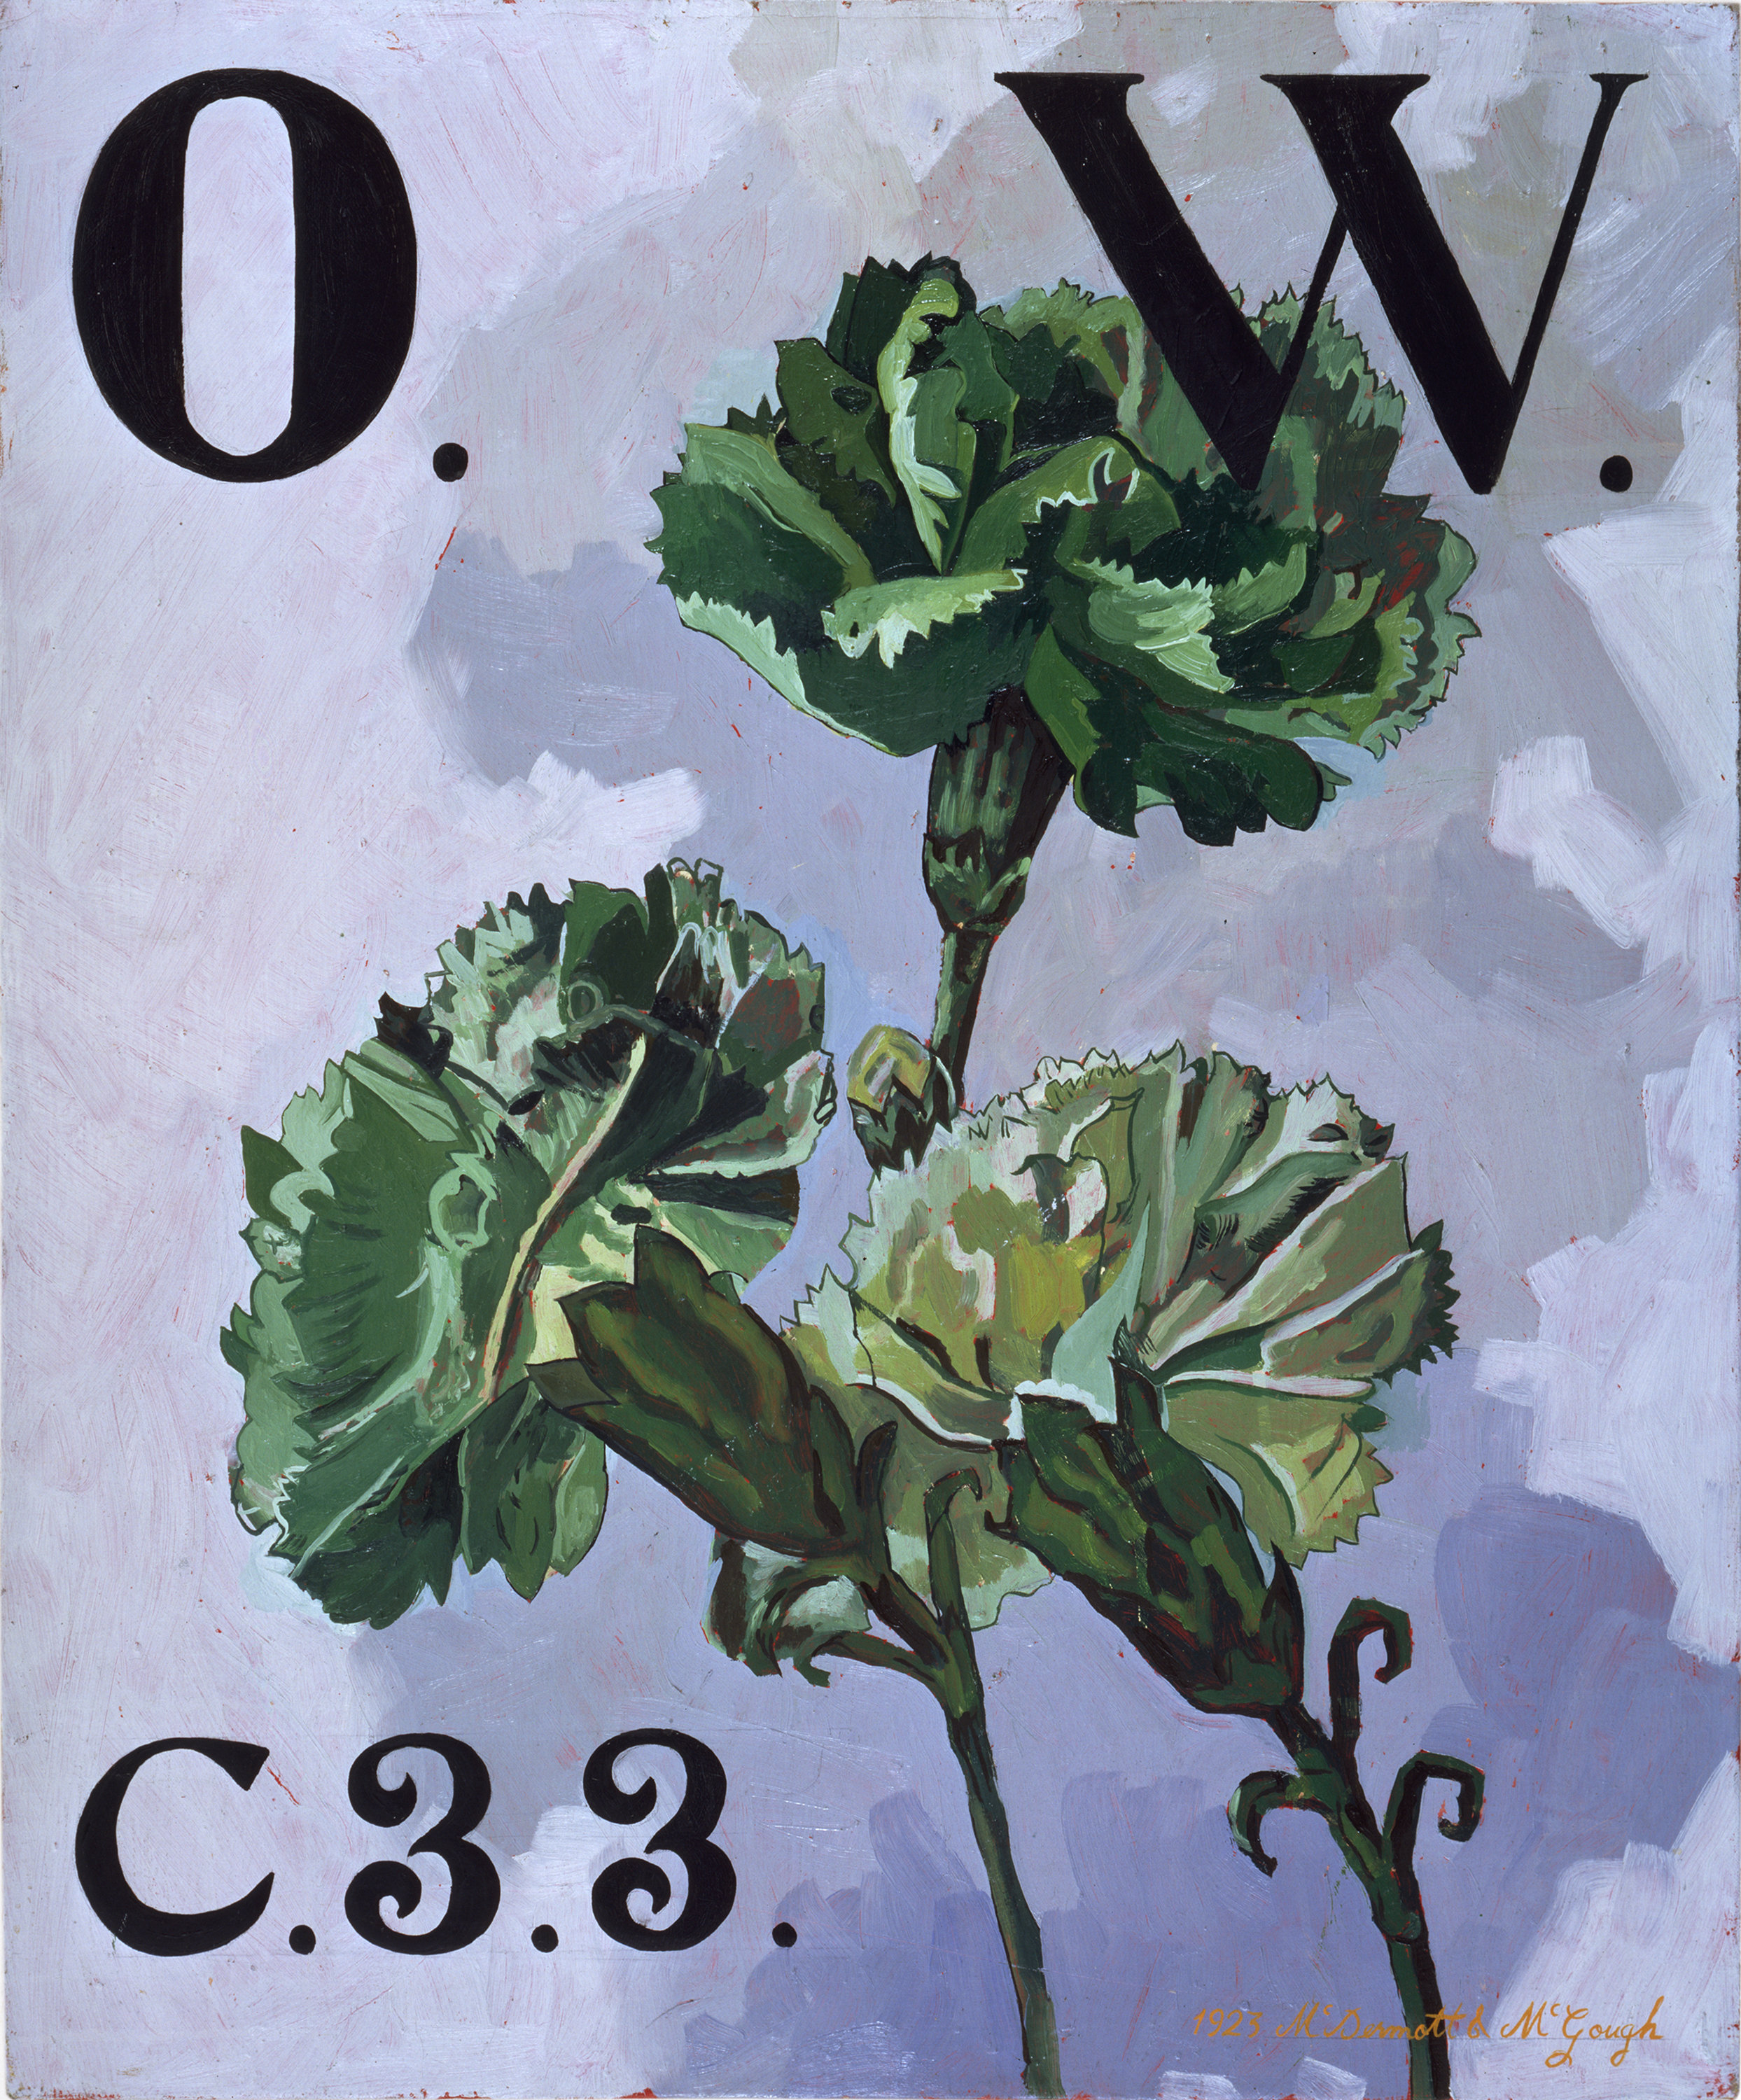 McDermott & McGough,  The Green Carnation, Oscar Wilde, O.W. C.33,   1923,  Oil on Linen, 1994 (Courtesy of the Artists)